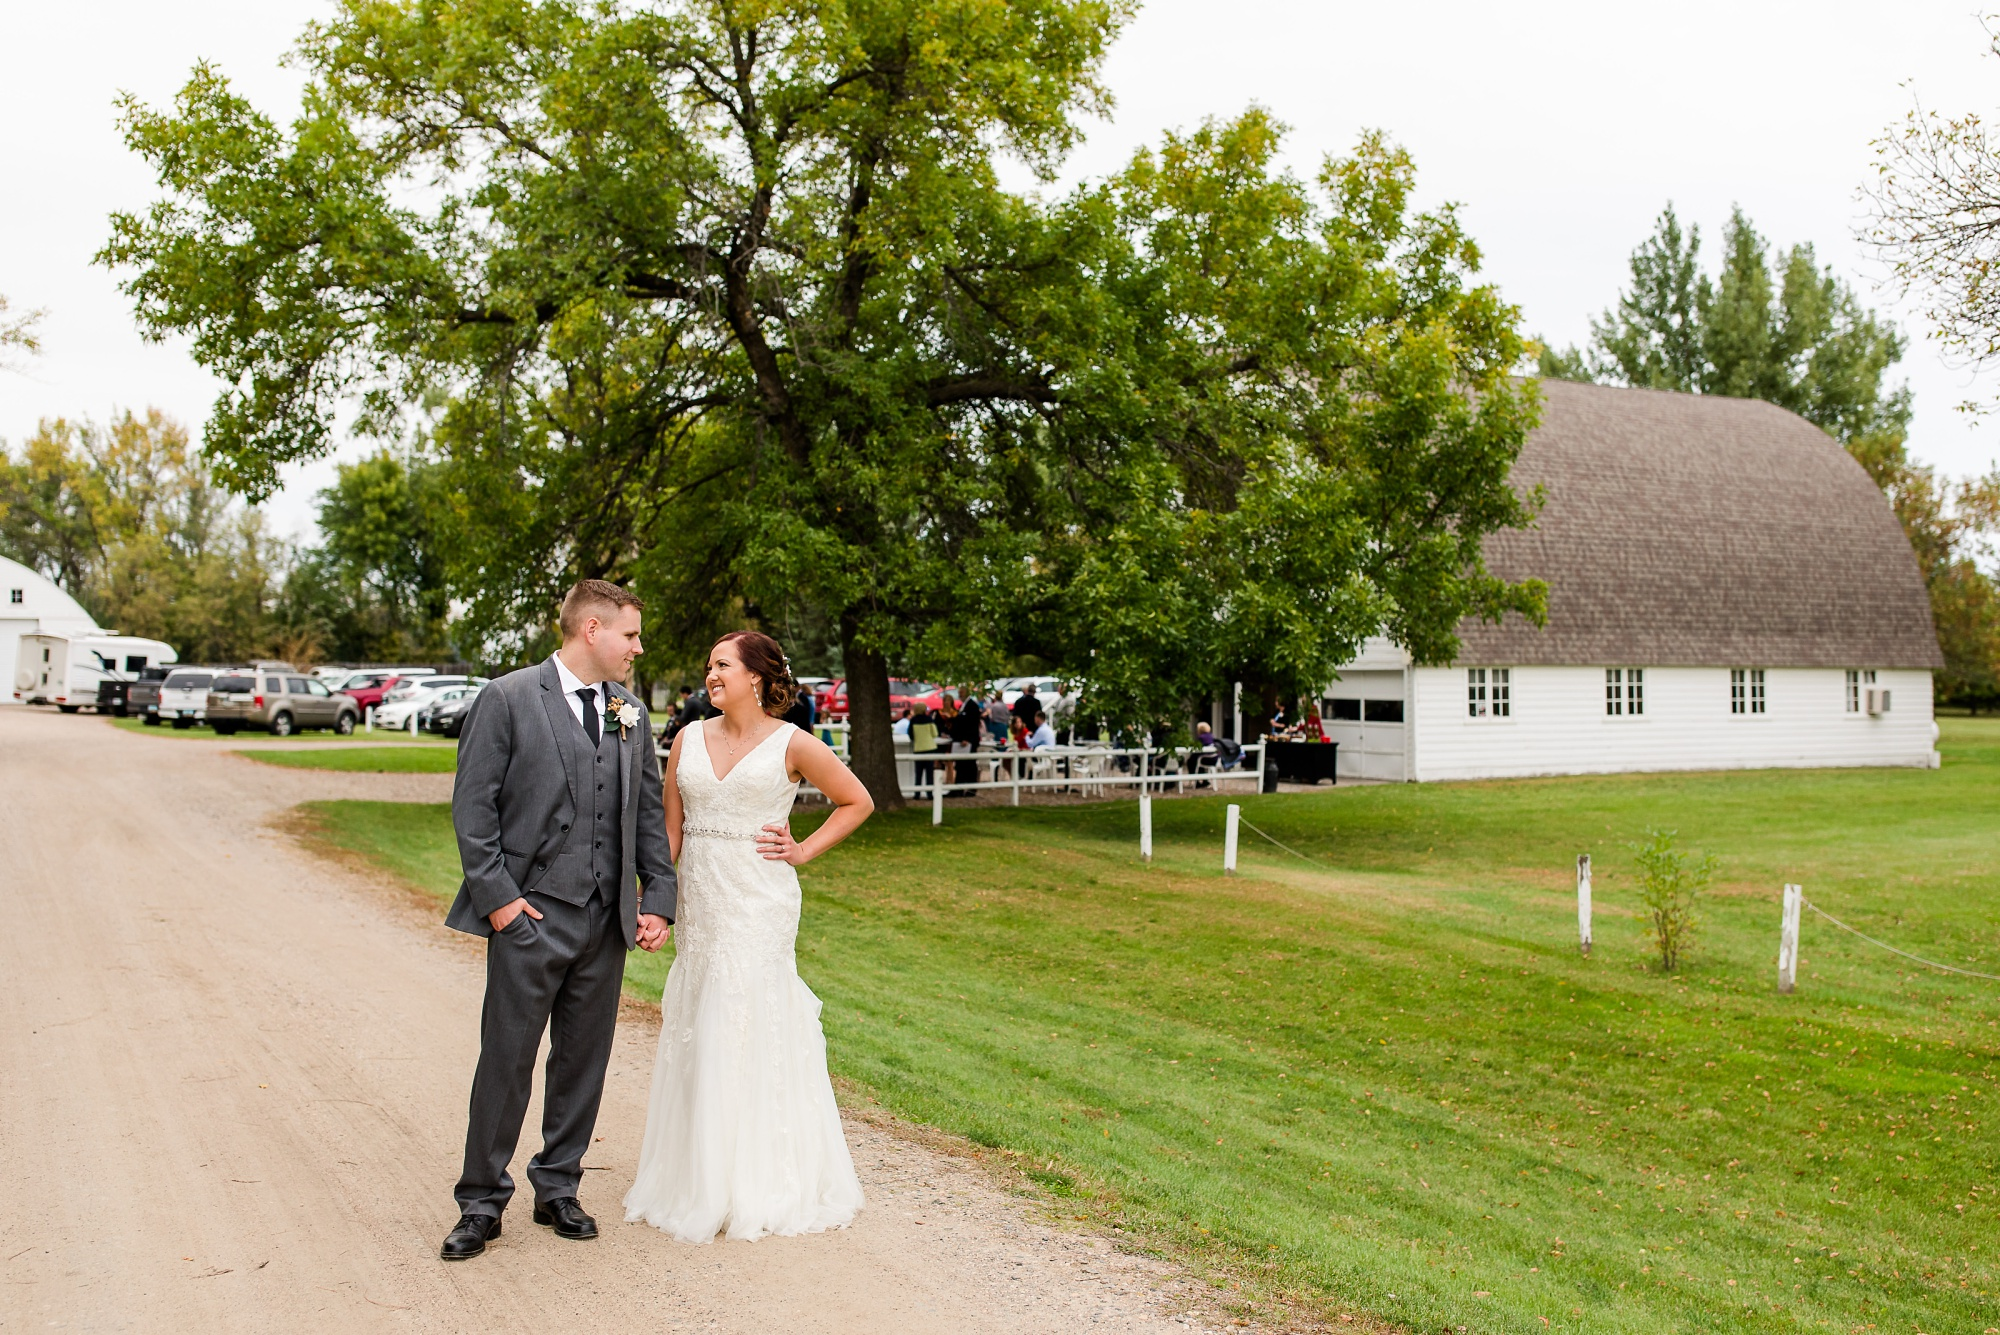 Amber Langerud Photography_Moohread, Outdoor, Barn Wedding at A Friends House_7123.jpg